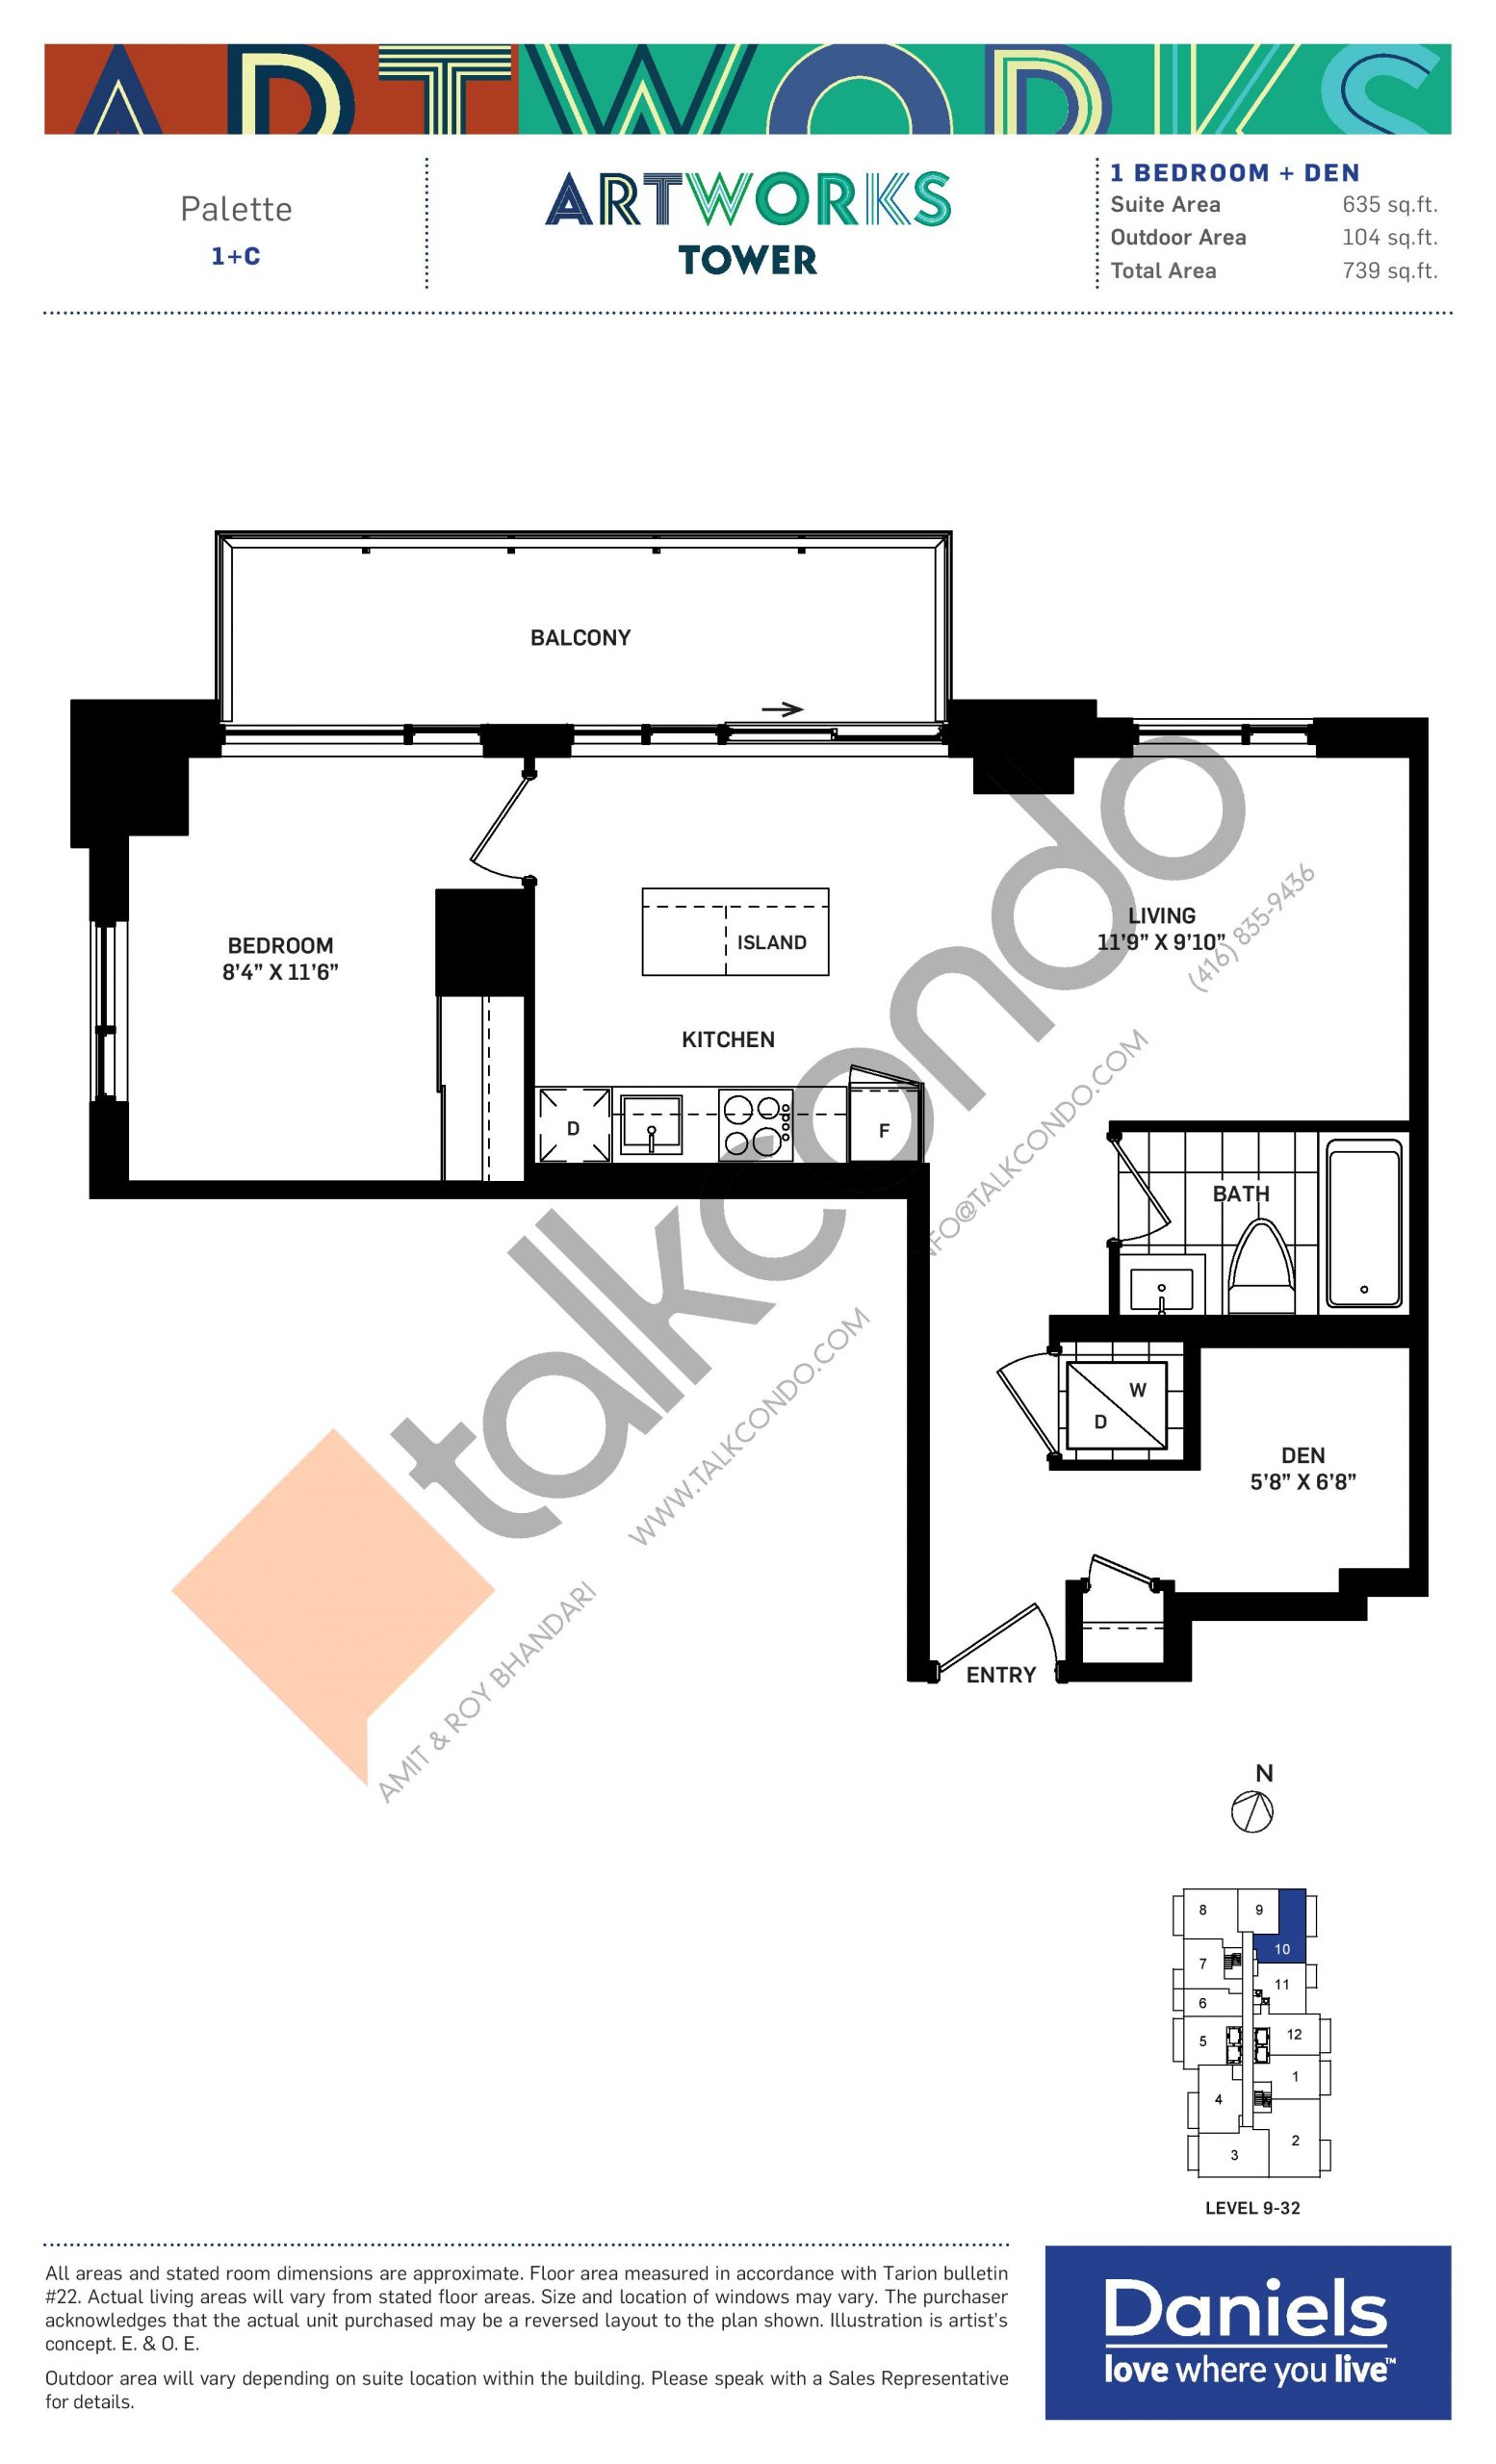 Palette Floor Plan at Artworks Tower Condos - 635 sq.ft